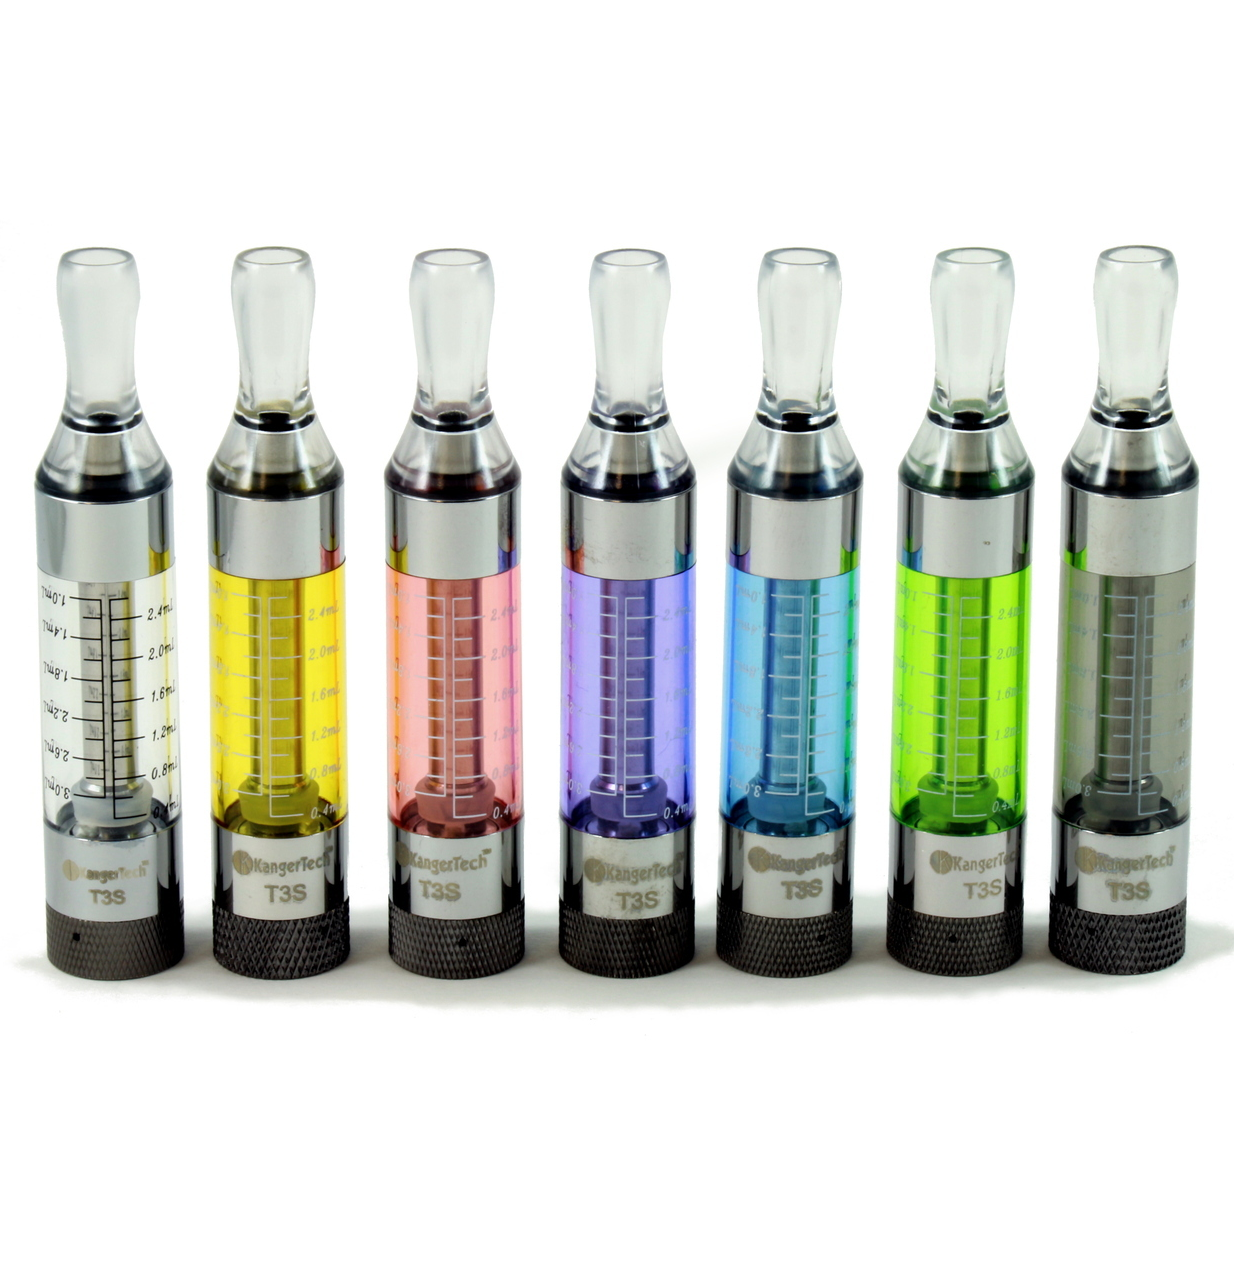 Kanger T3S Clearomizer 3 ml